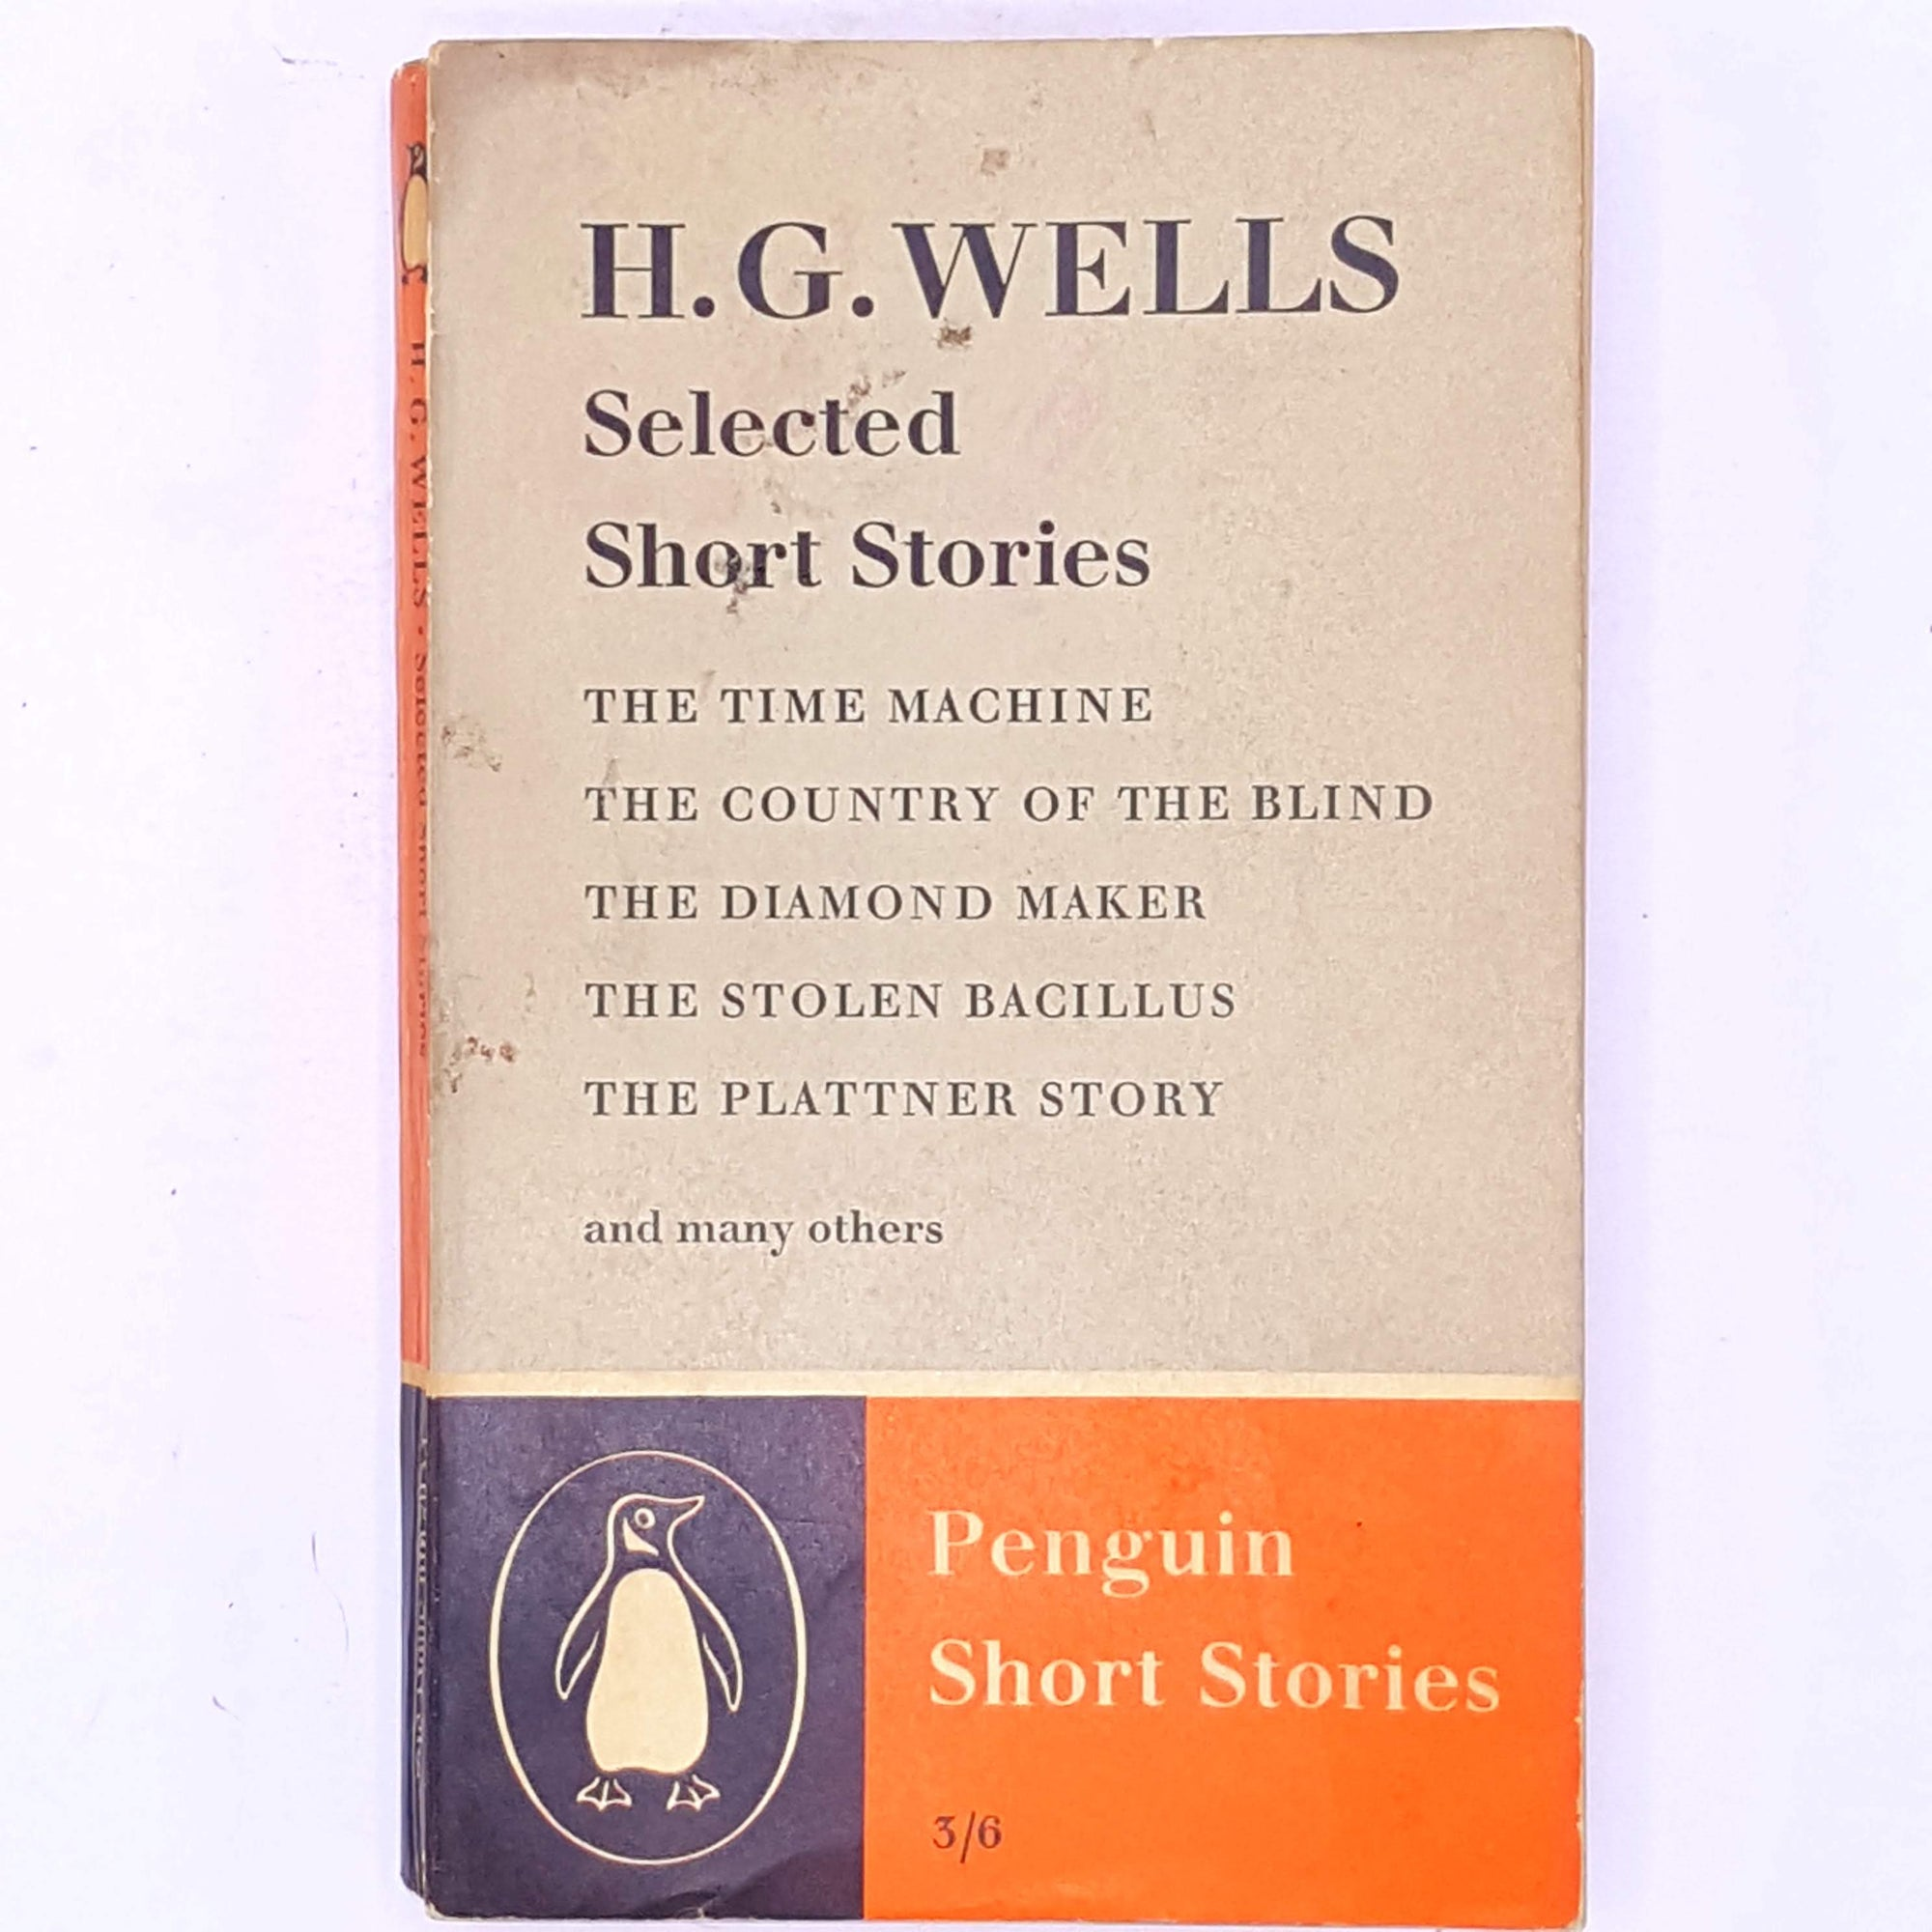 decorative-science-fiction-fantasy- patterned-books-antique-selected-short-stories-thrift-penguin-old-country-house-library-hg-wells-vintage-classic-